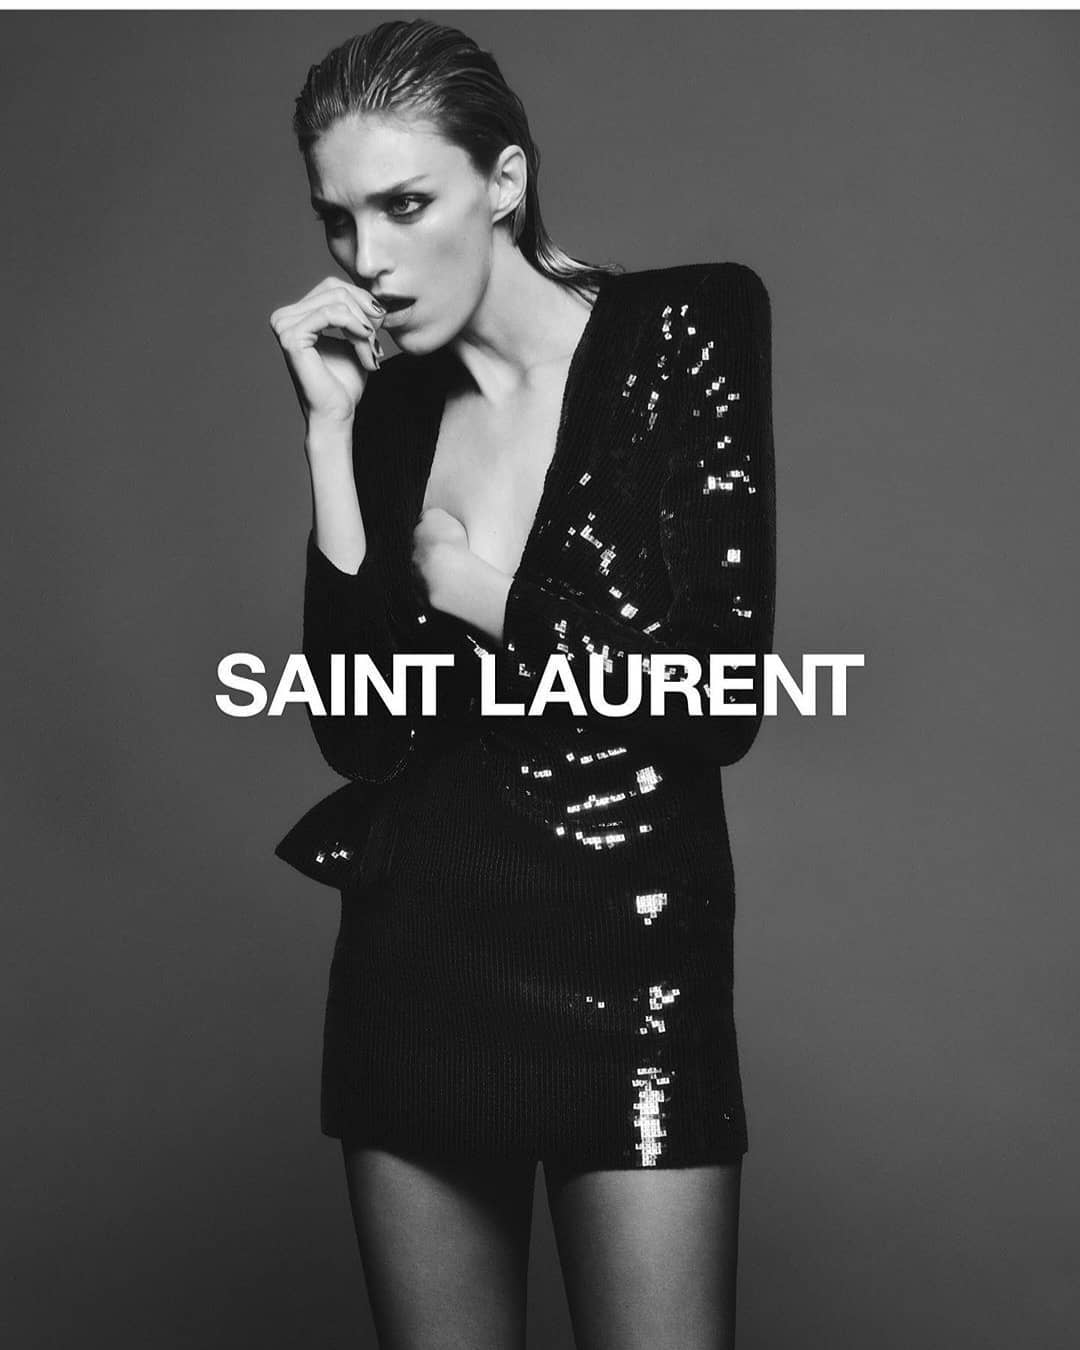 saint_laurent_fall_2019_campaign1.jpg